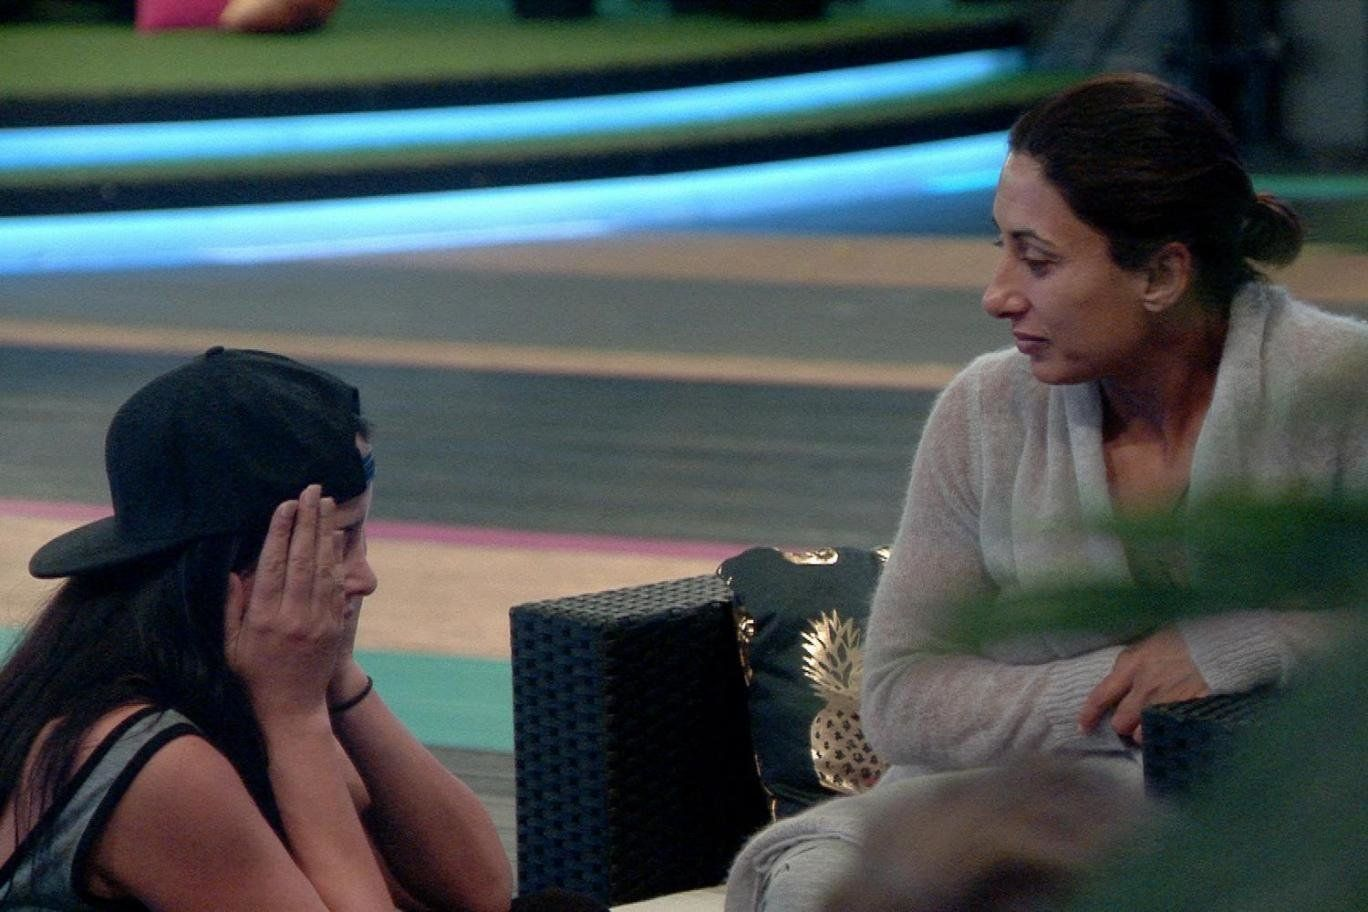 'CBB' Fans Call For Marnie To Be Removed Over Saira Flashing